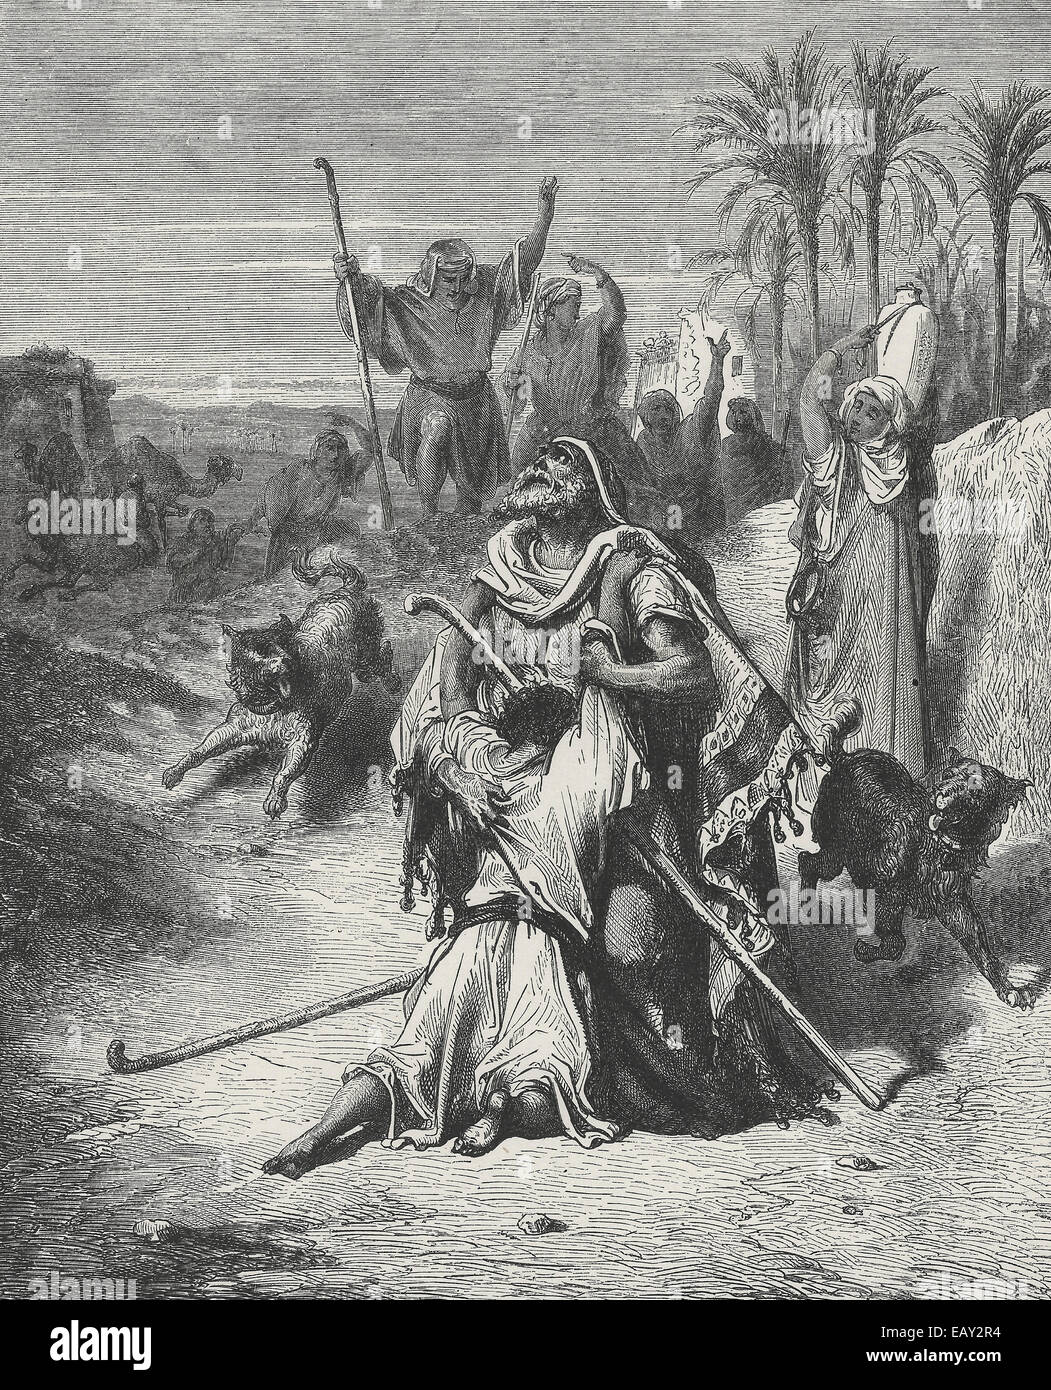 The Prodigal Son - New Testament Parable - Stock Image